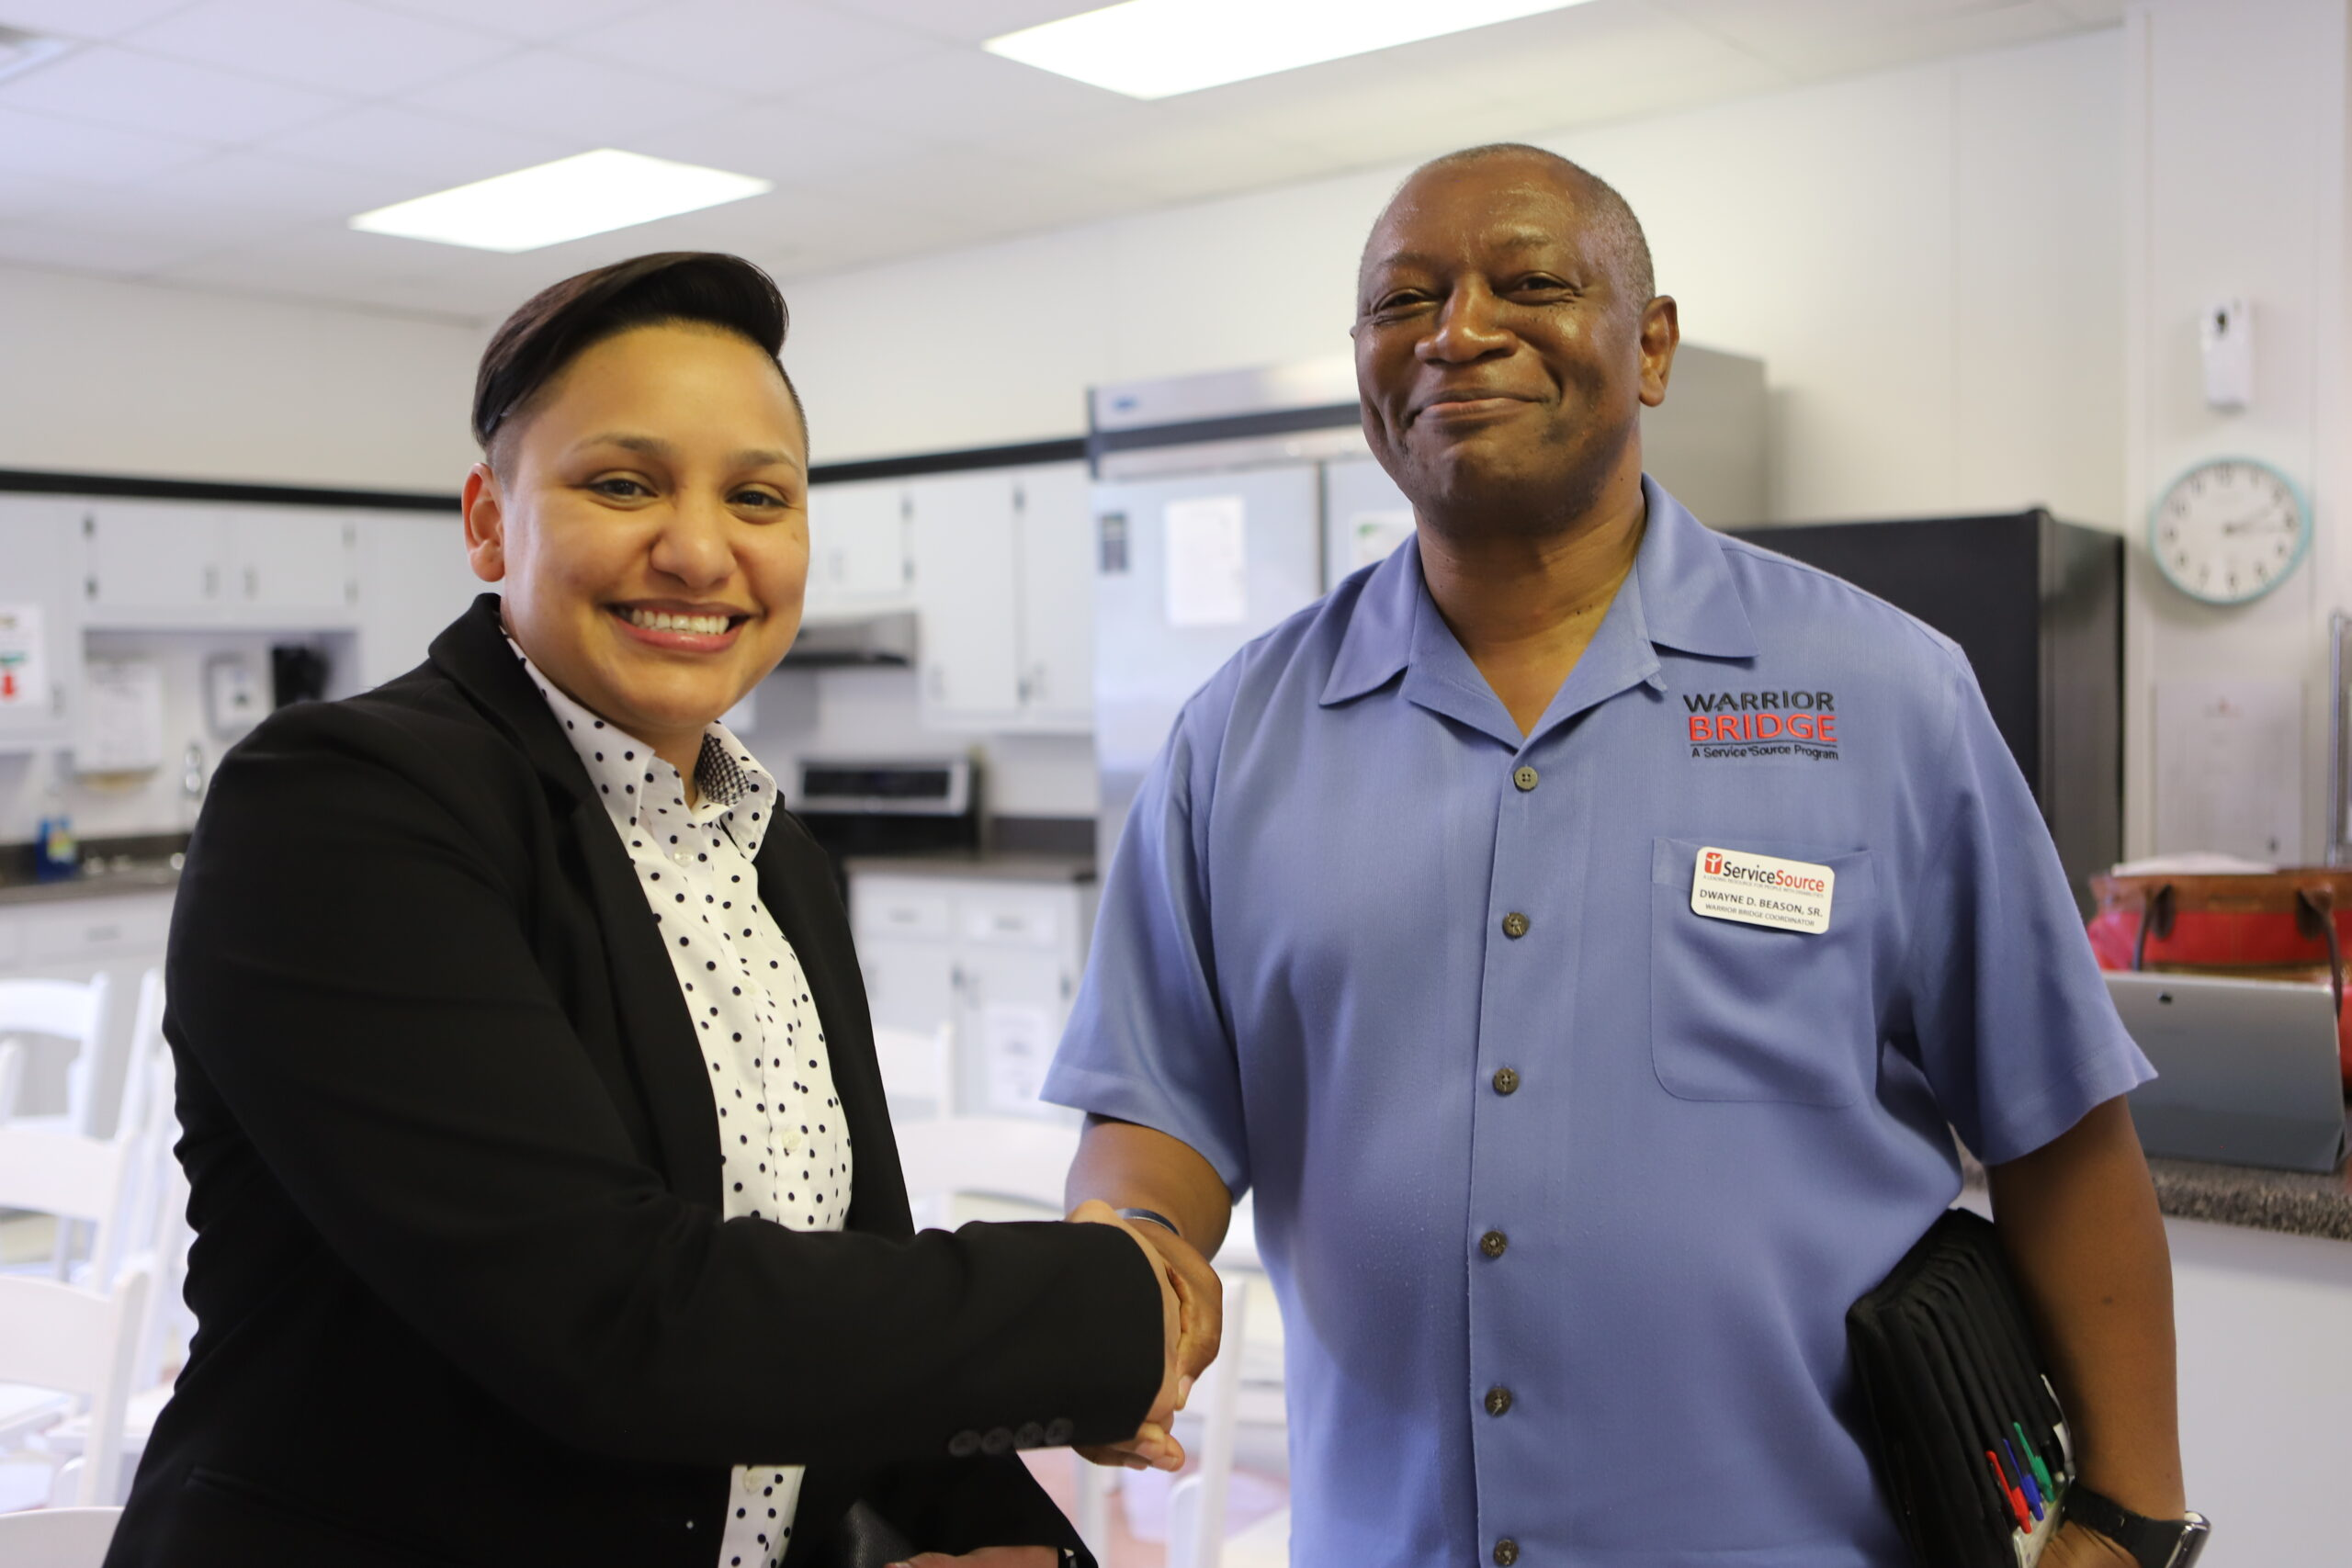 two people smiling at camera shaking hands